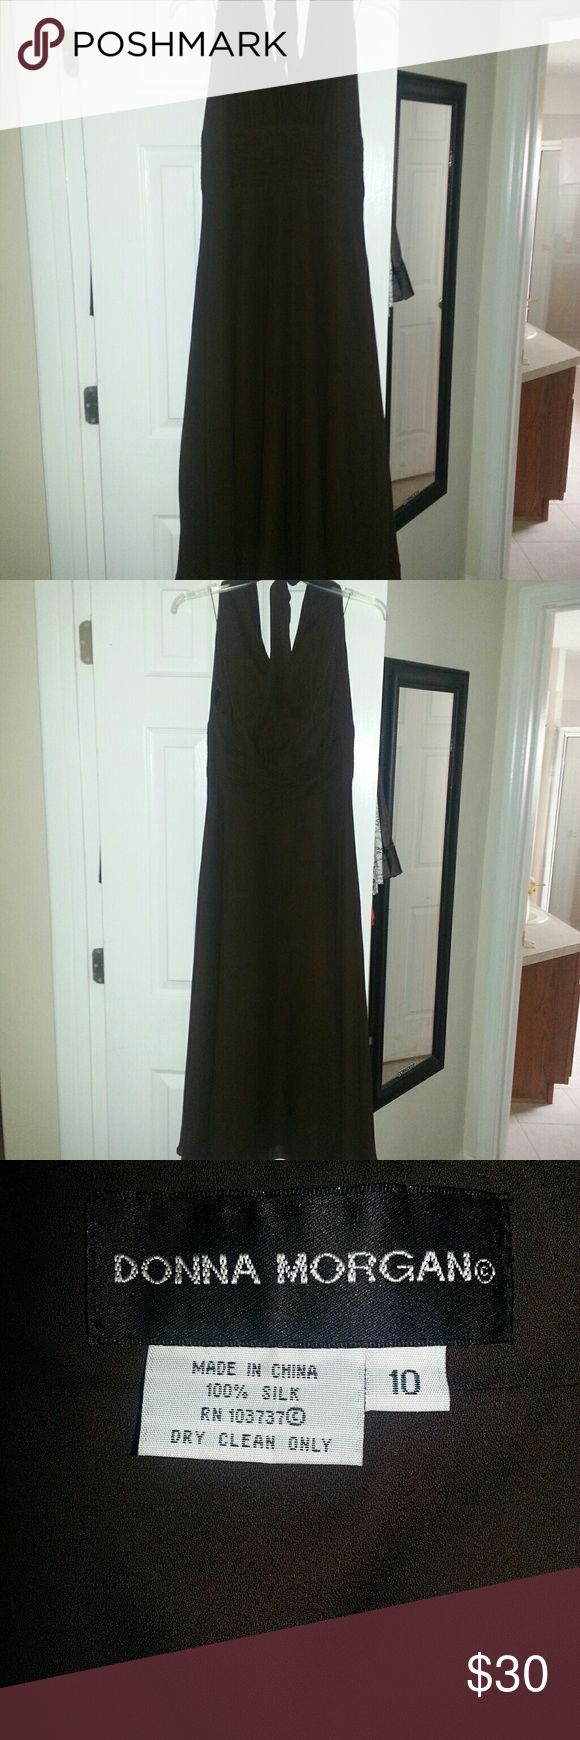 """Donna Morgan 100% silk brown halter dress Donna Morgan 100% silk chocolate brown calf length fully lined dress. Ties behind the neck & has an invisible zipper in middle of back. Has 4"""" of fabric rouching under bustline all the way around the dress. Skirt is full & flowy.  Dress was never worn. Donna Morgan Dresses Midi"""